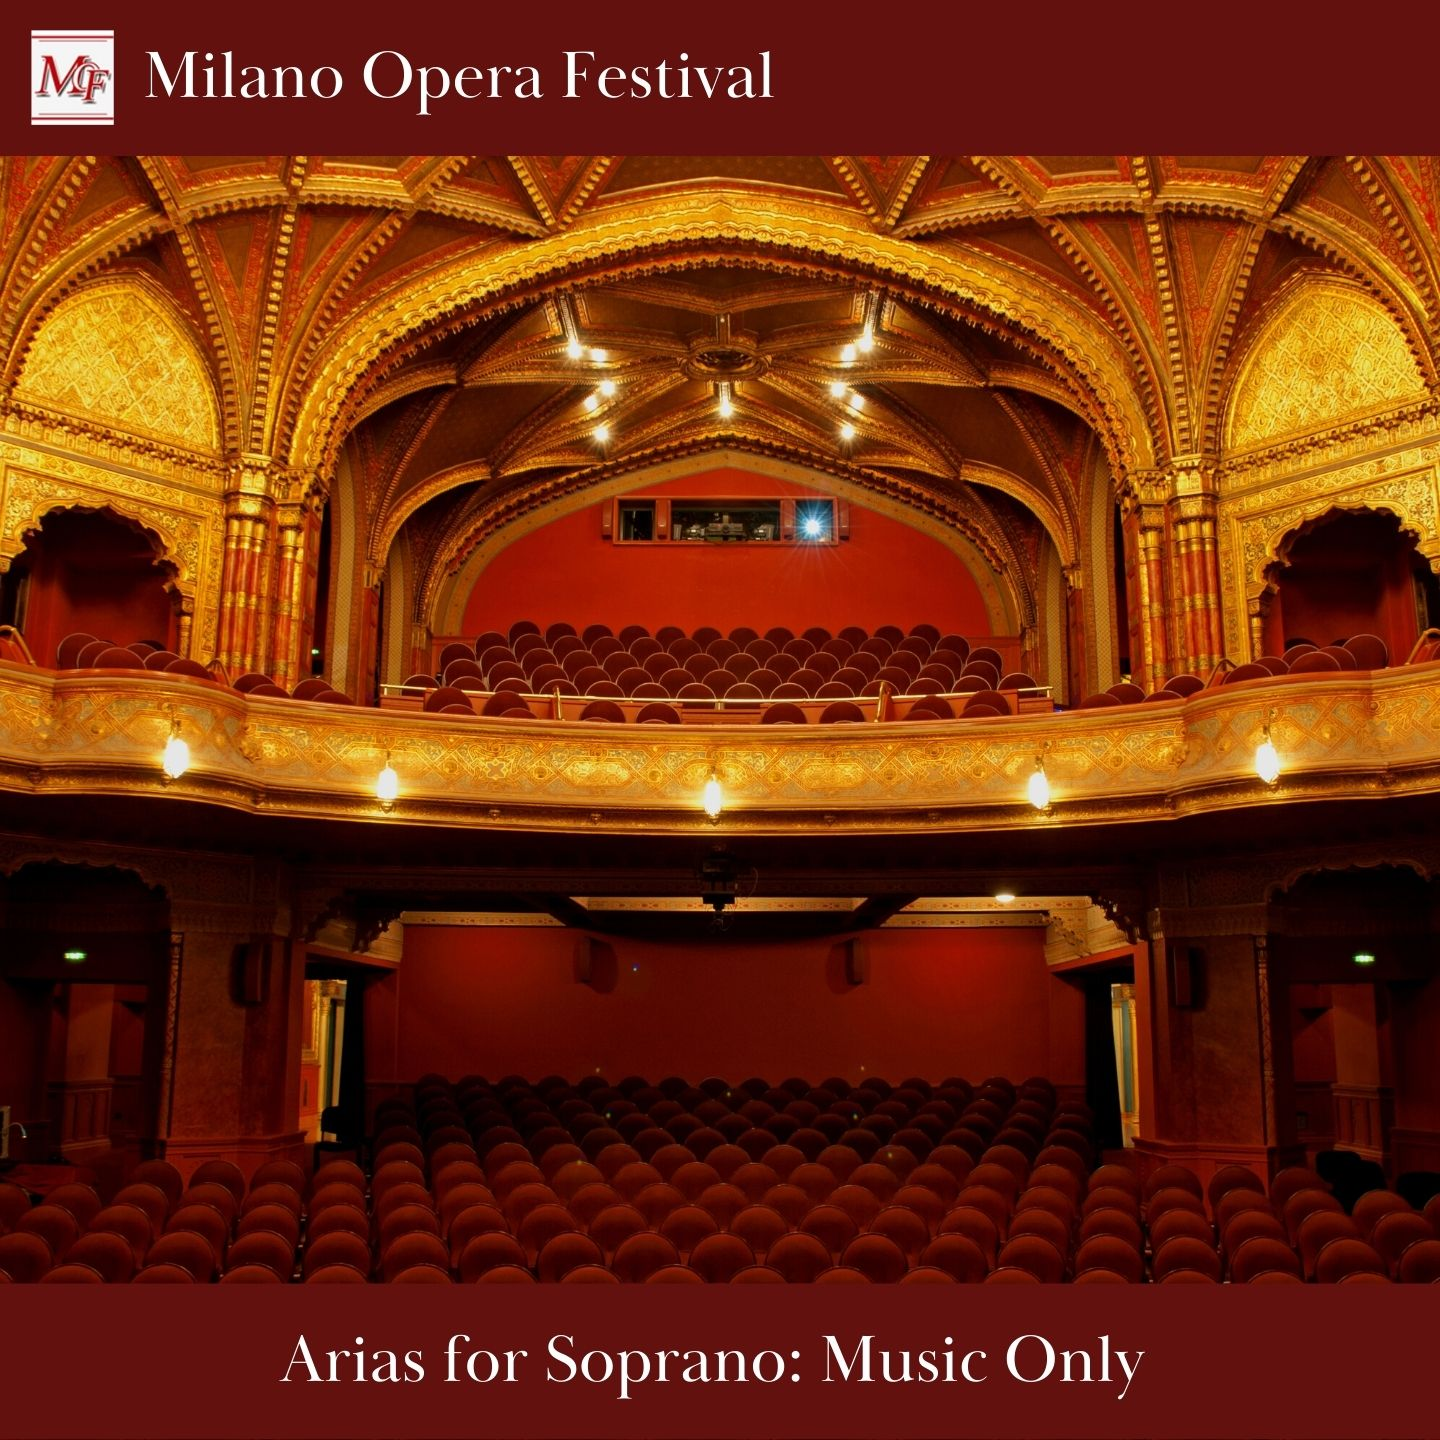 Arias for Soprano - Only Music